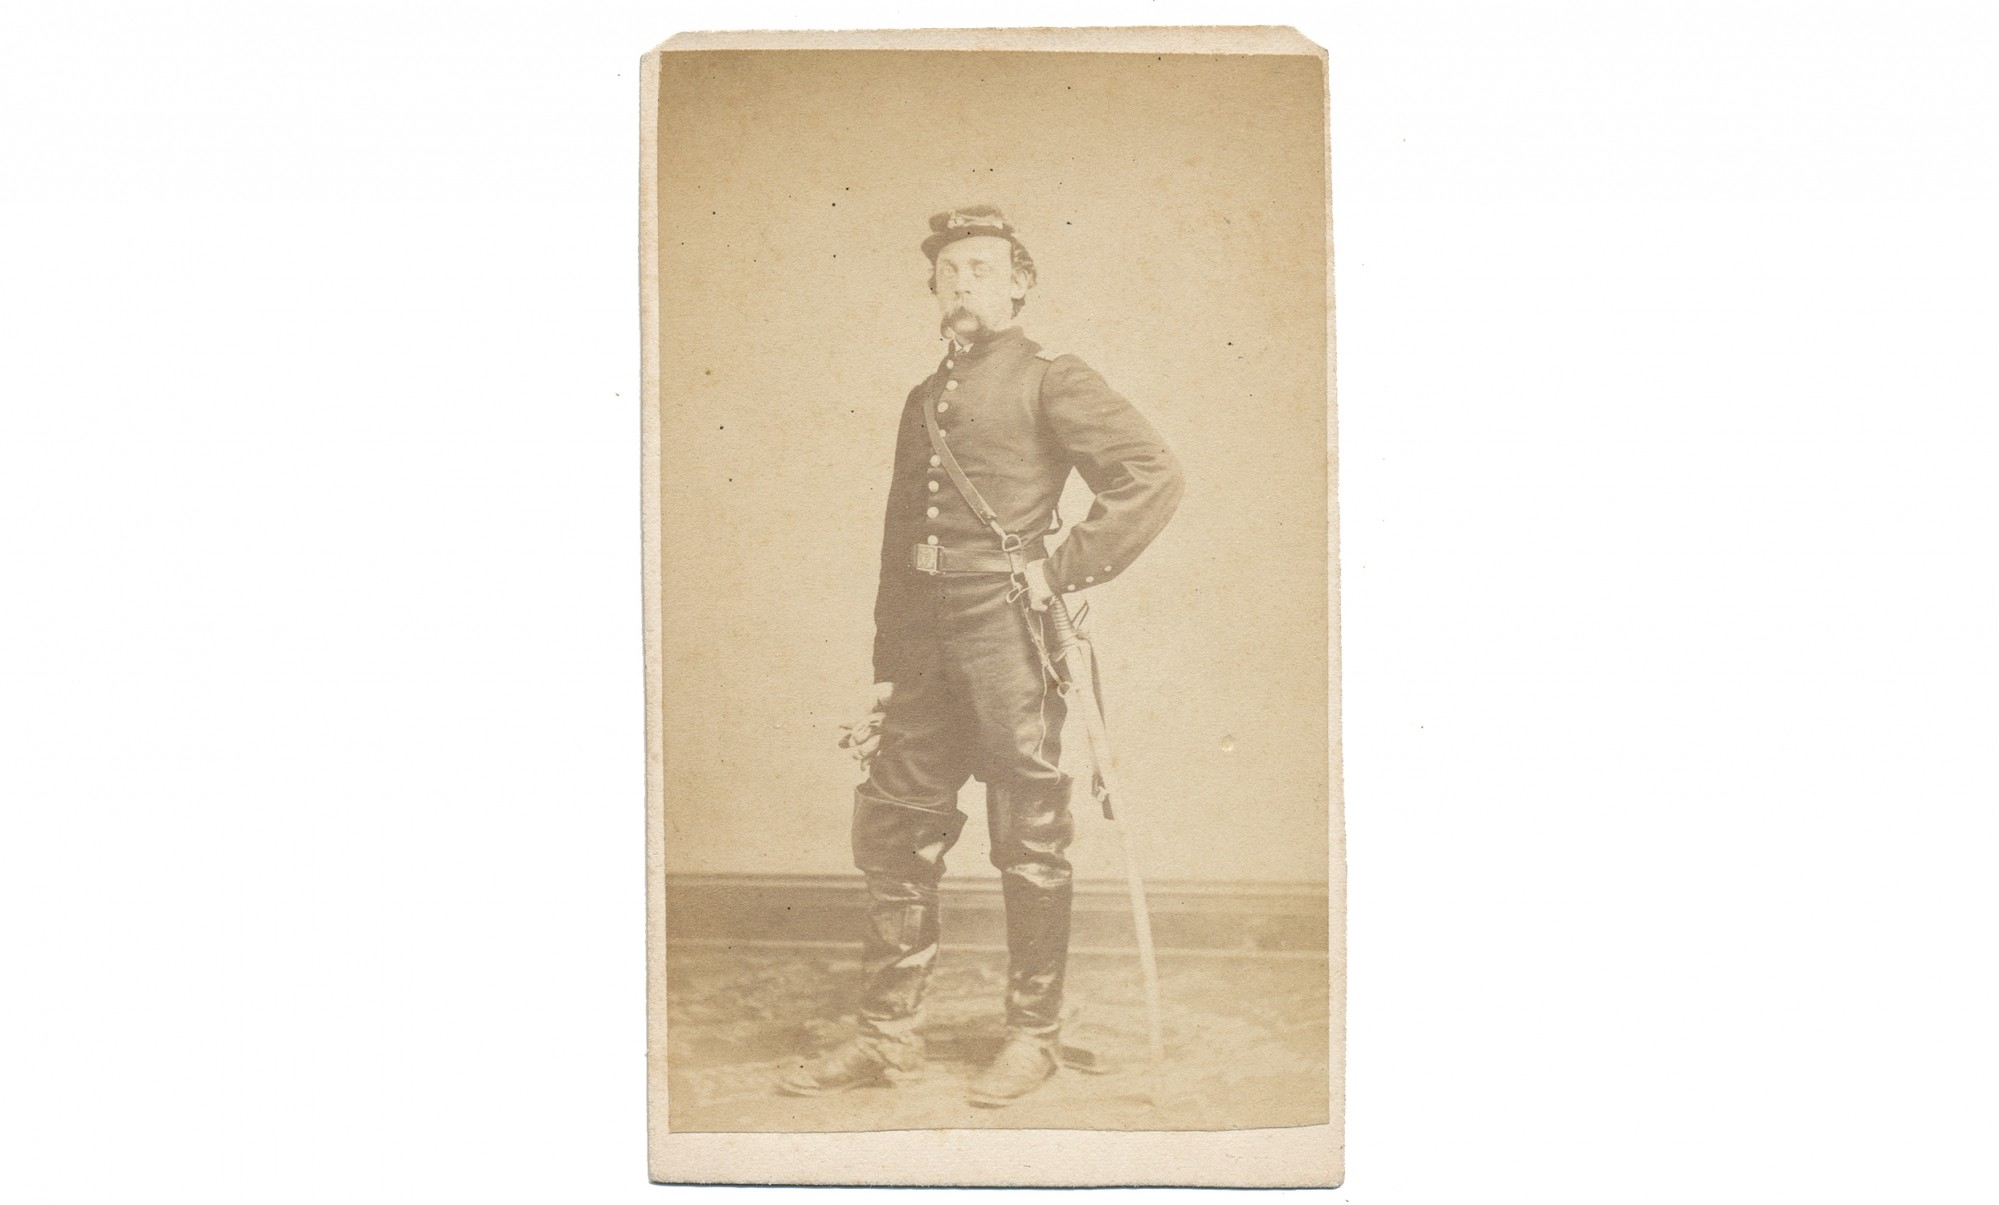 CDV FULL STANDING VIEW OF C. HOUGHTON LAWRENCE OF THE 2ND NEW HAMPSHIRE AND ADJUTANT GENERALS DEPARTMENT